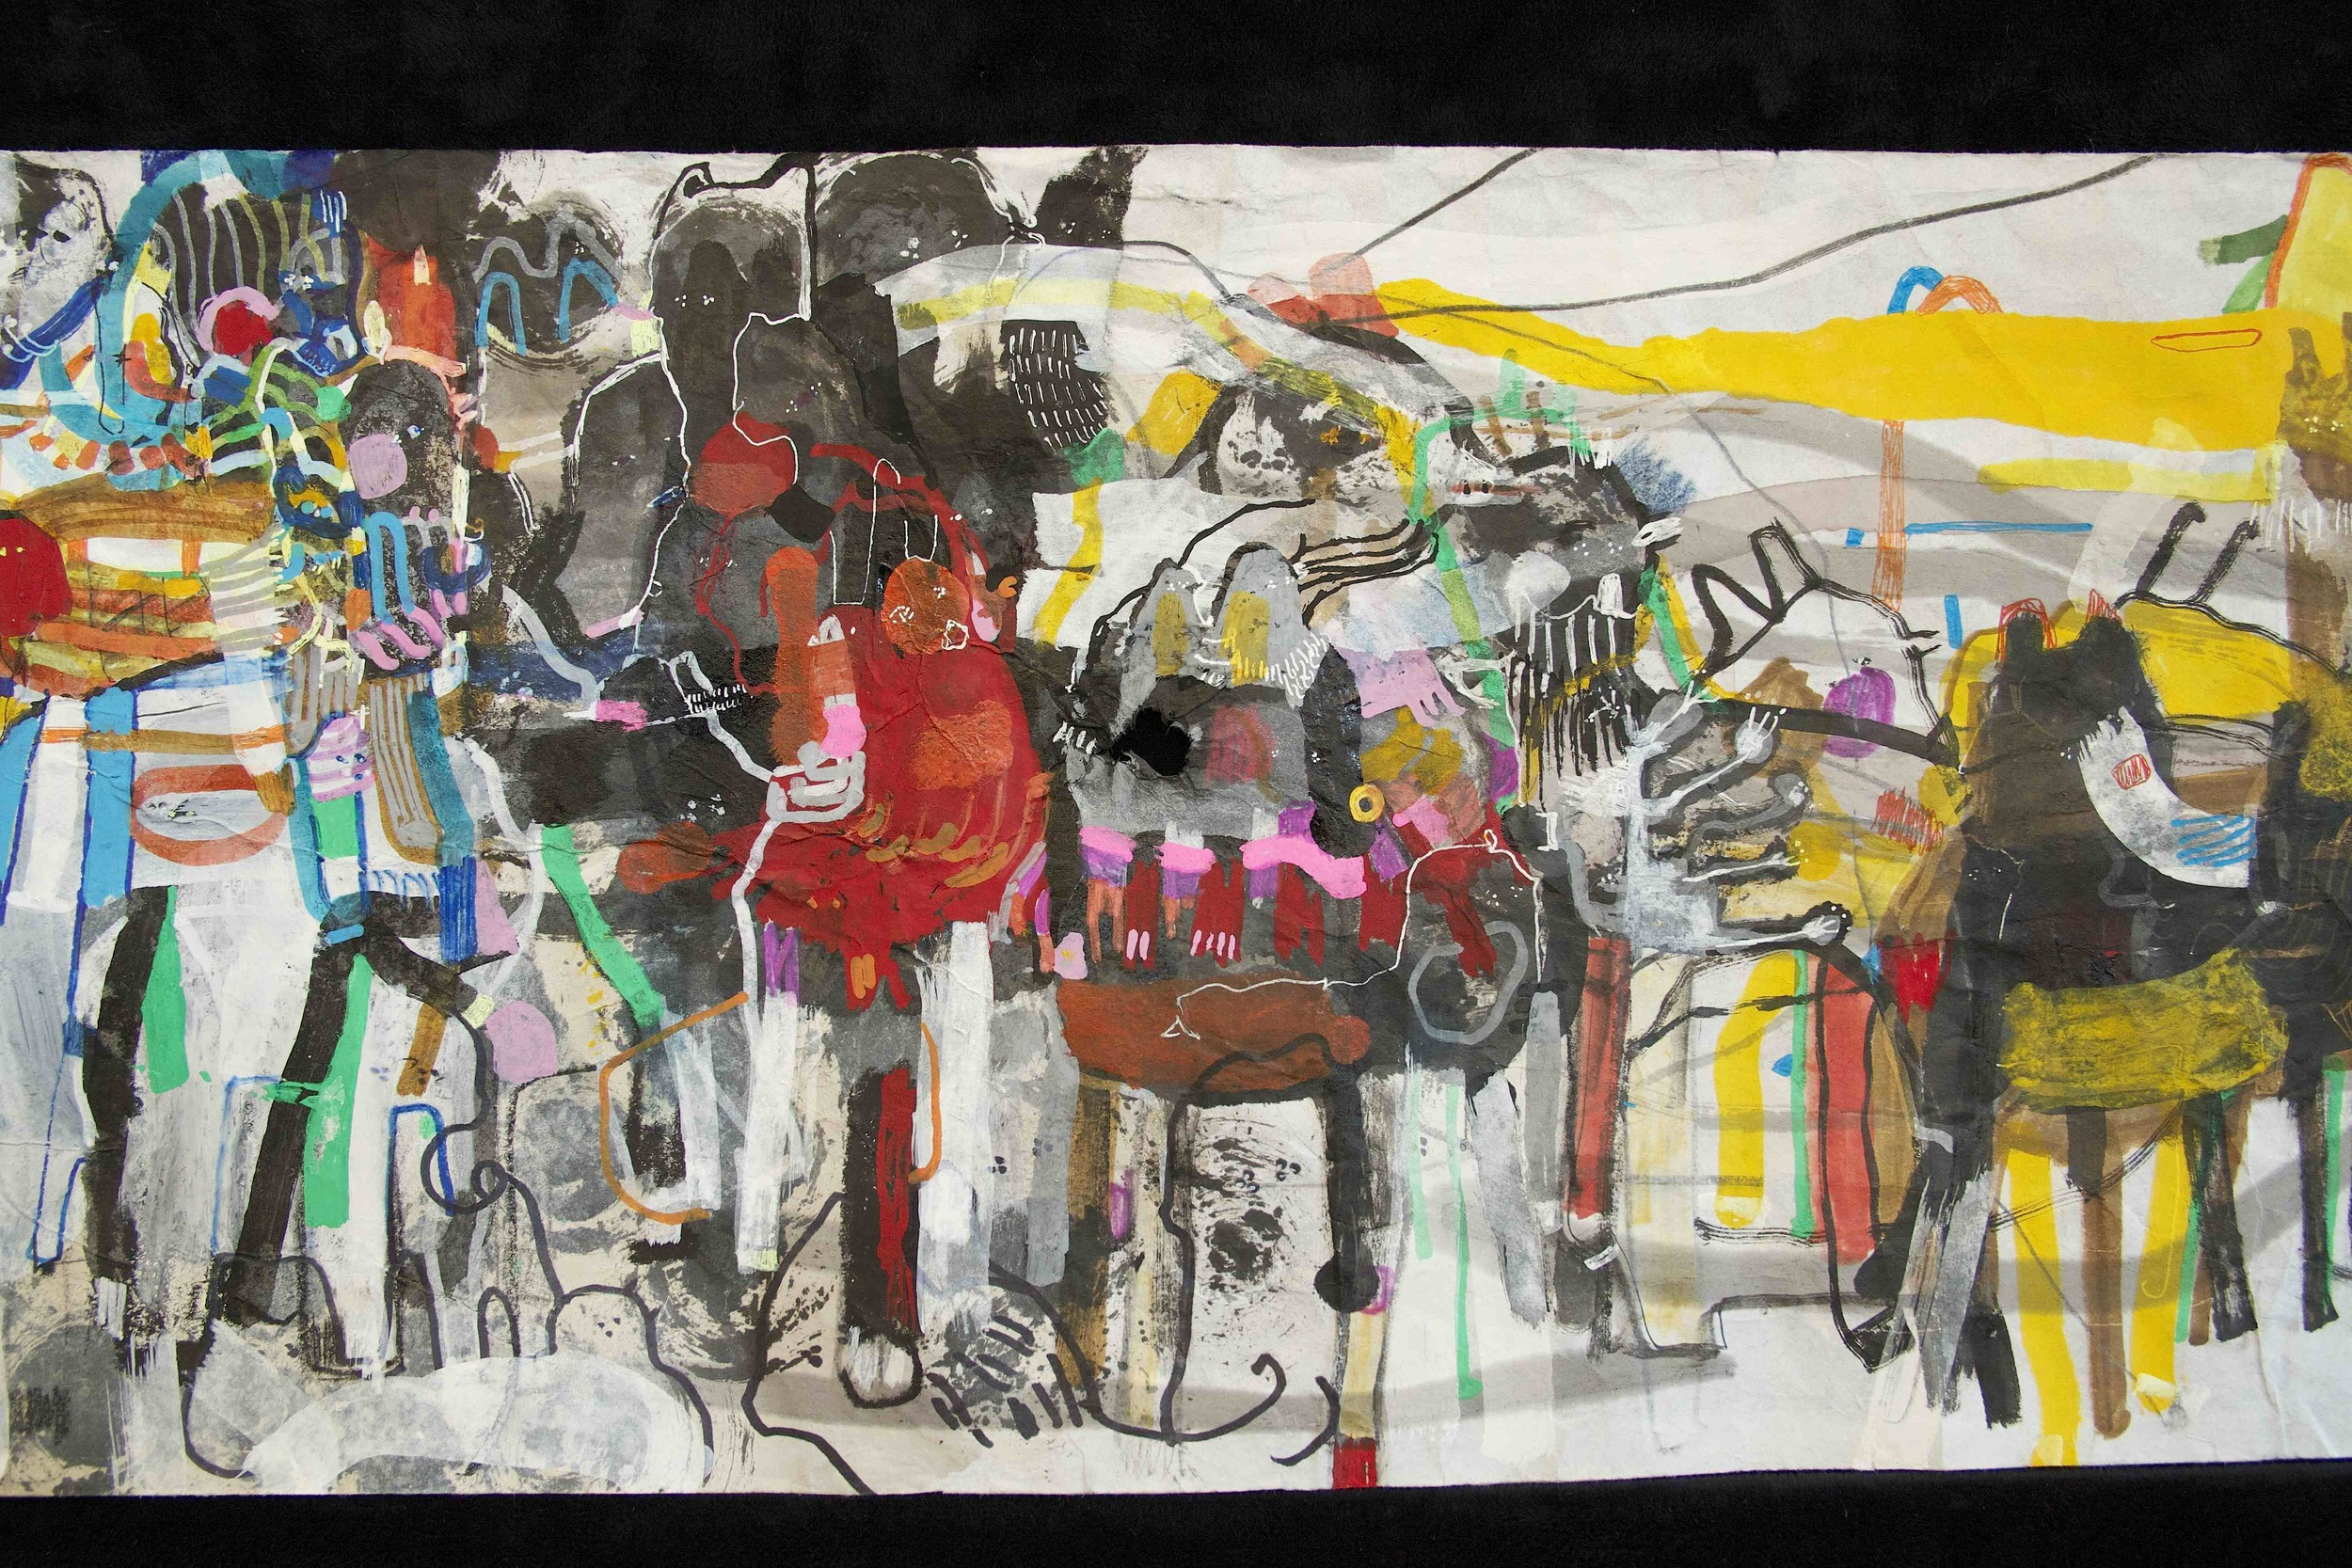 """[Detail no 29]  """"The Wind atop The Wood -Winds of Mount Meru Tangling Threads of Rainbow atop the Wood -Scroll 8""""   11 inches x 60 feet  ink, watercolor, gouache, dye, lost & found paper, crayon and graphite on mulberry paper scroll  2015"""